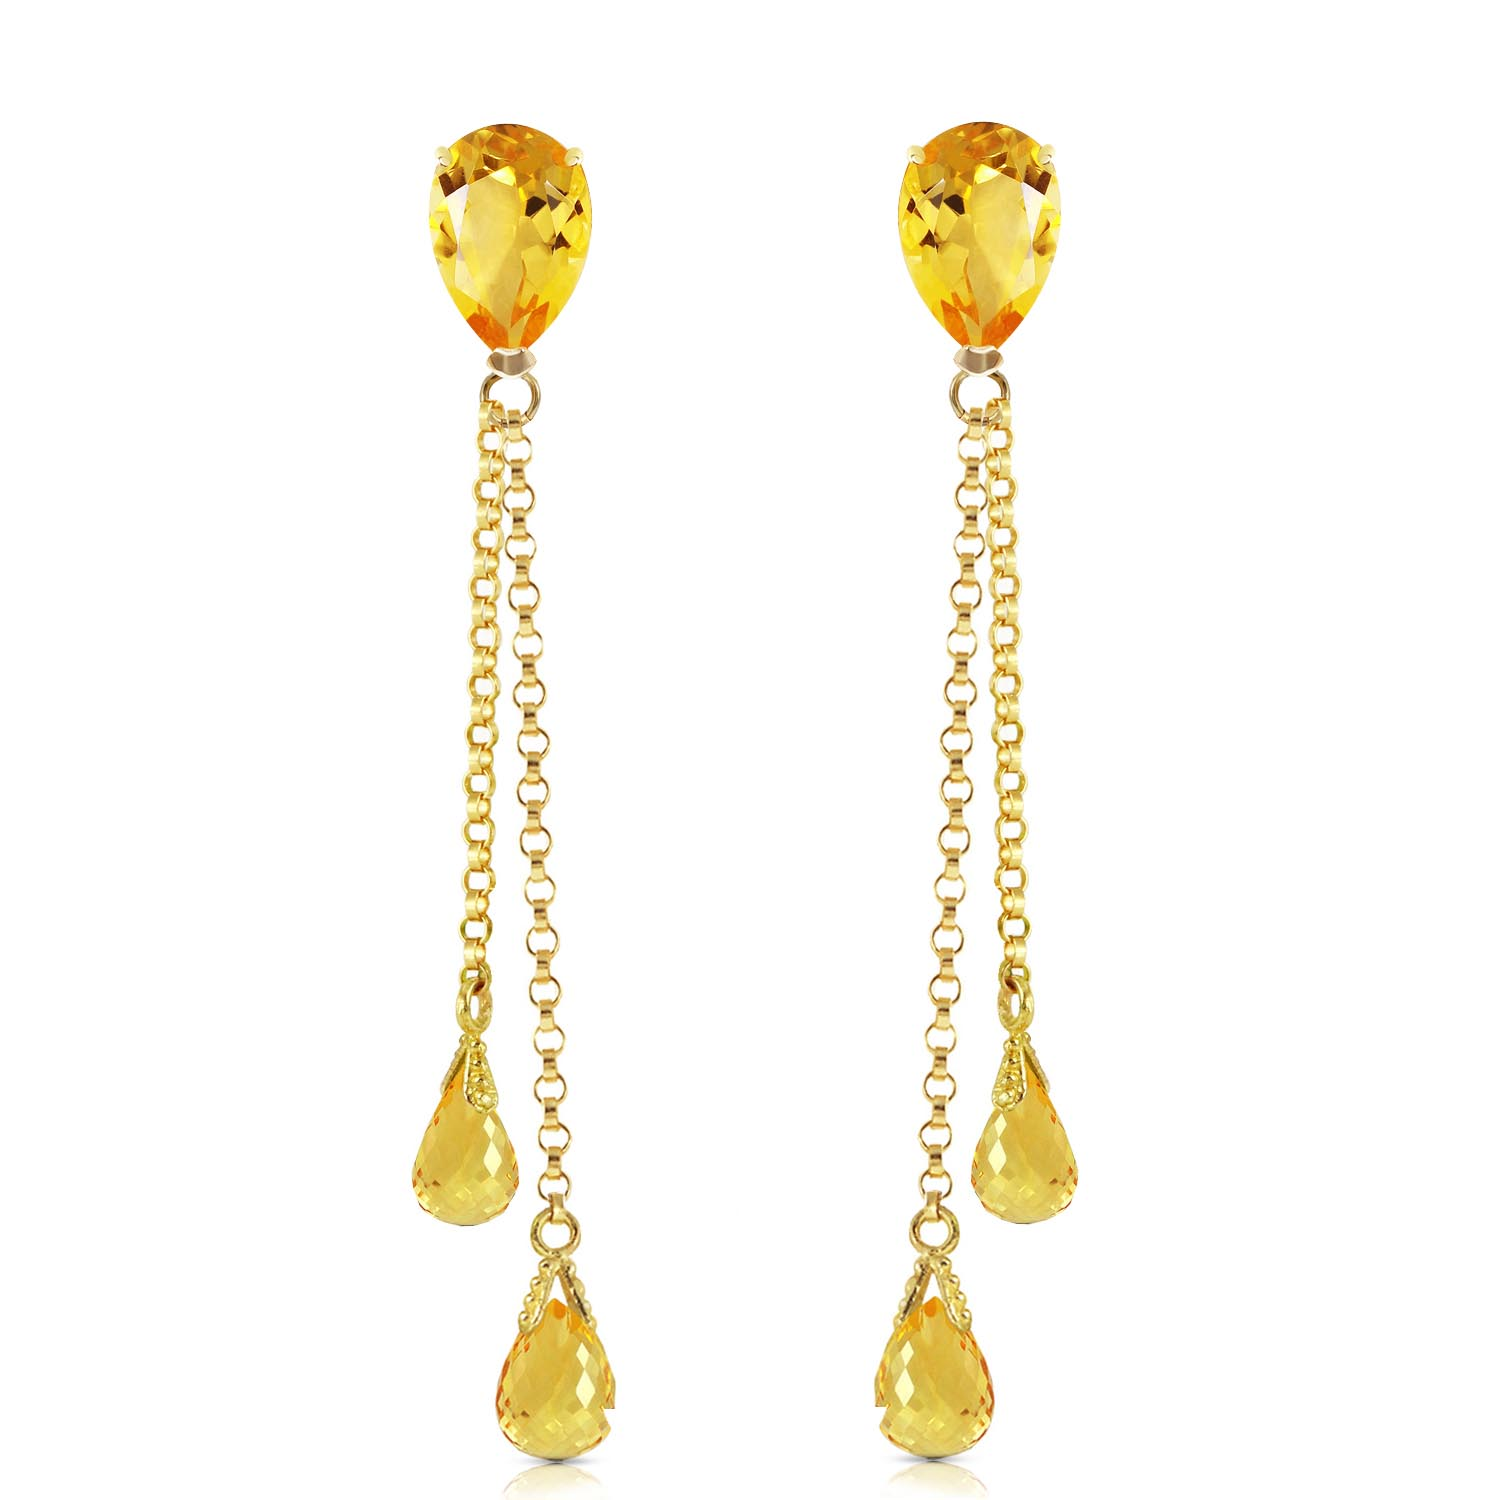 Citrine Droplet Earrings 7.5ctw in 9ct Gold